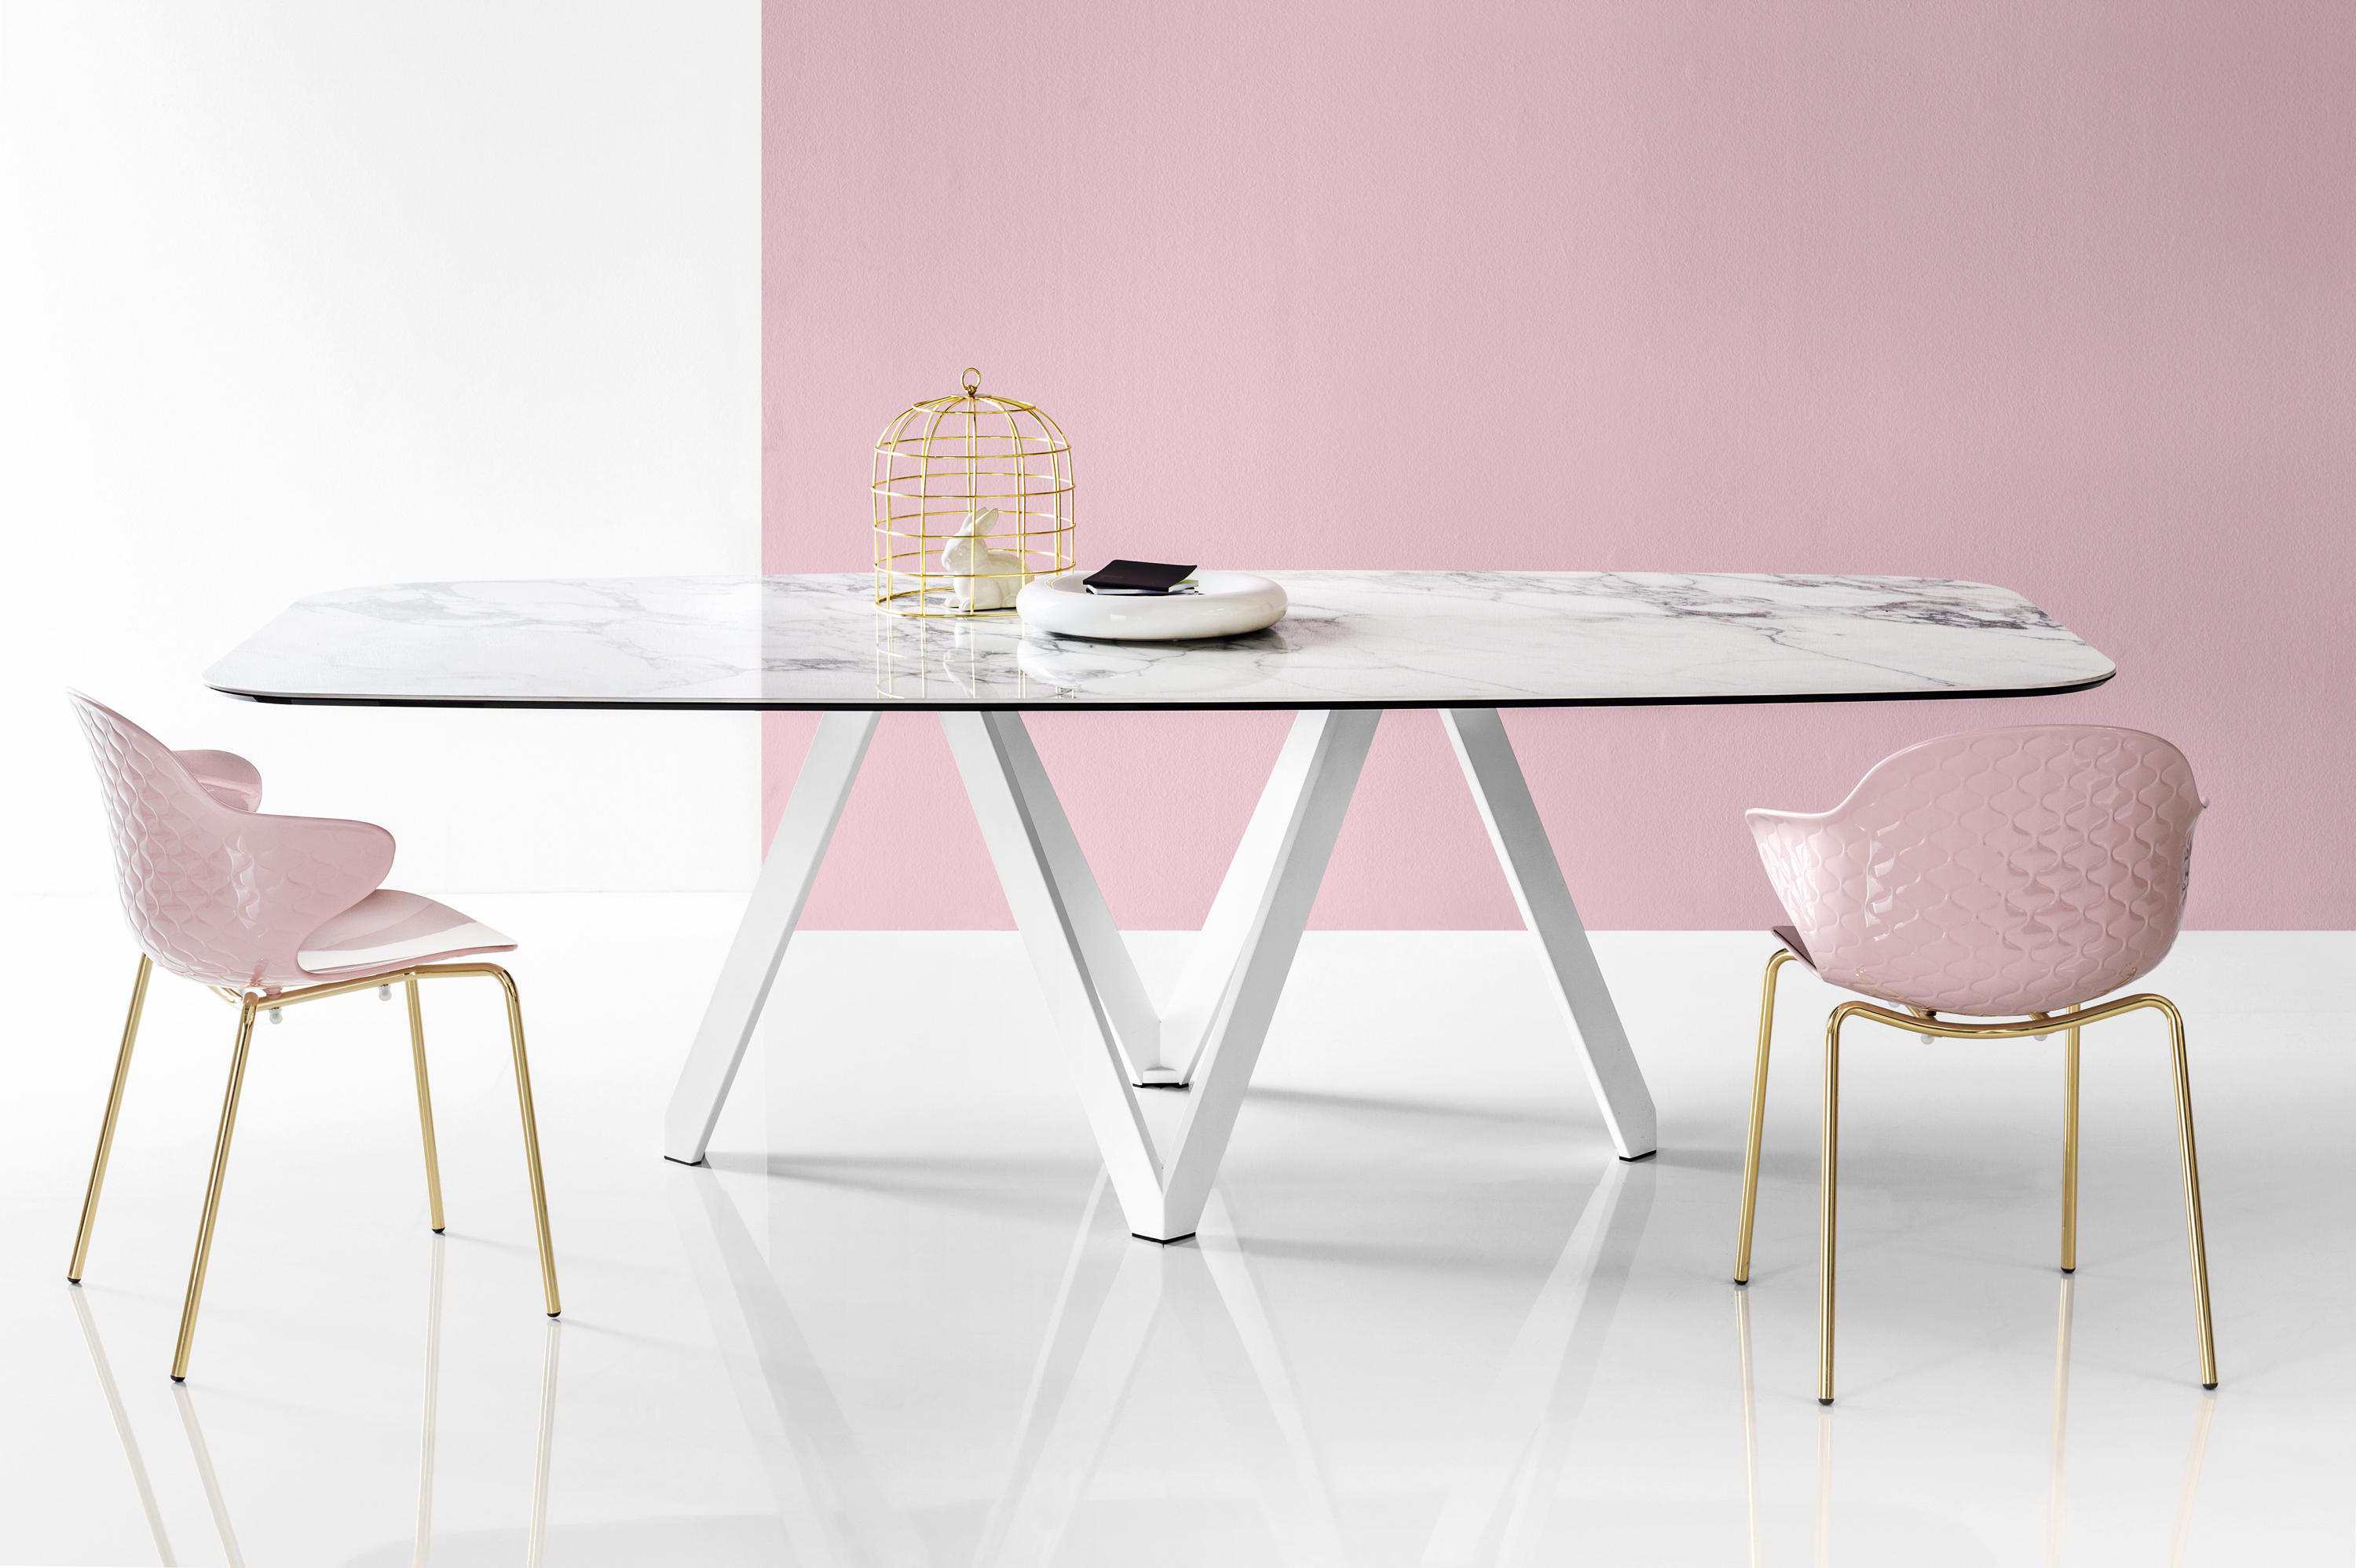 Saint tropez chairs from calligaris architonic for Calligaris udine